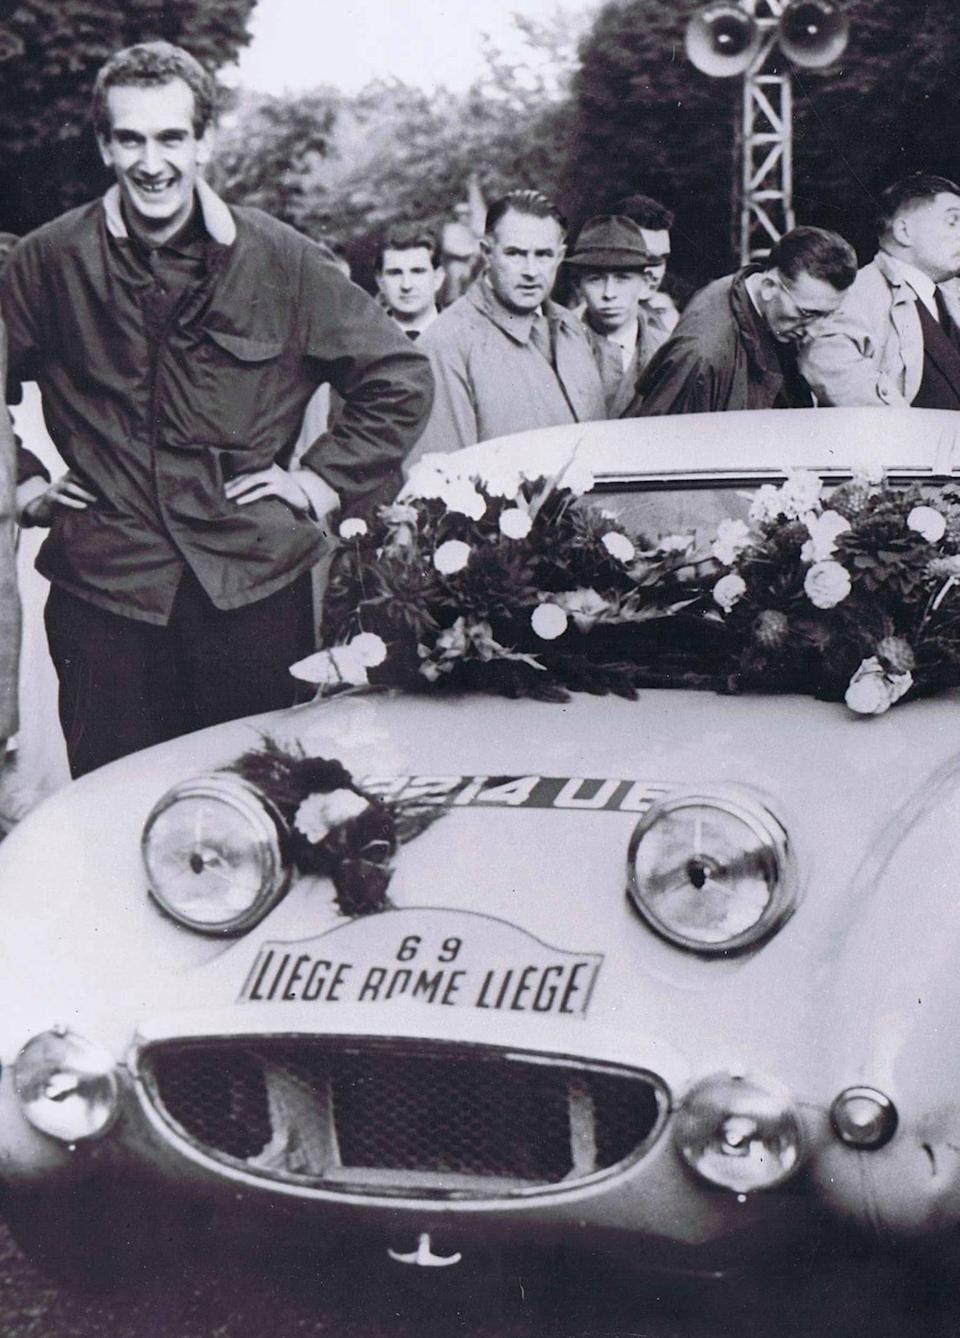 At the Liege-Rome-Liege event in 1960 (Healey Museum archive)